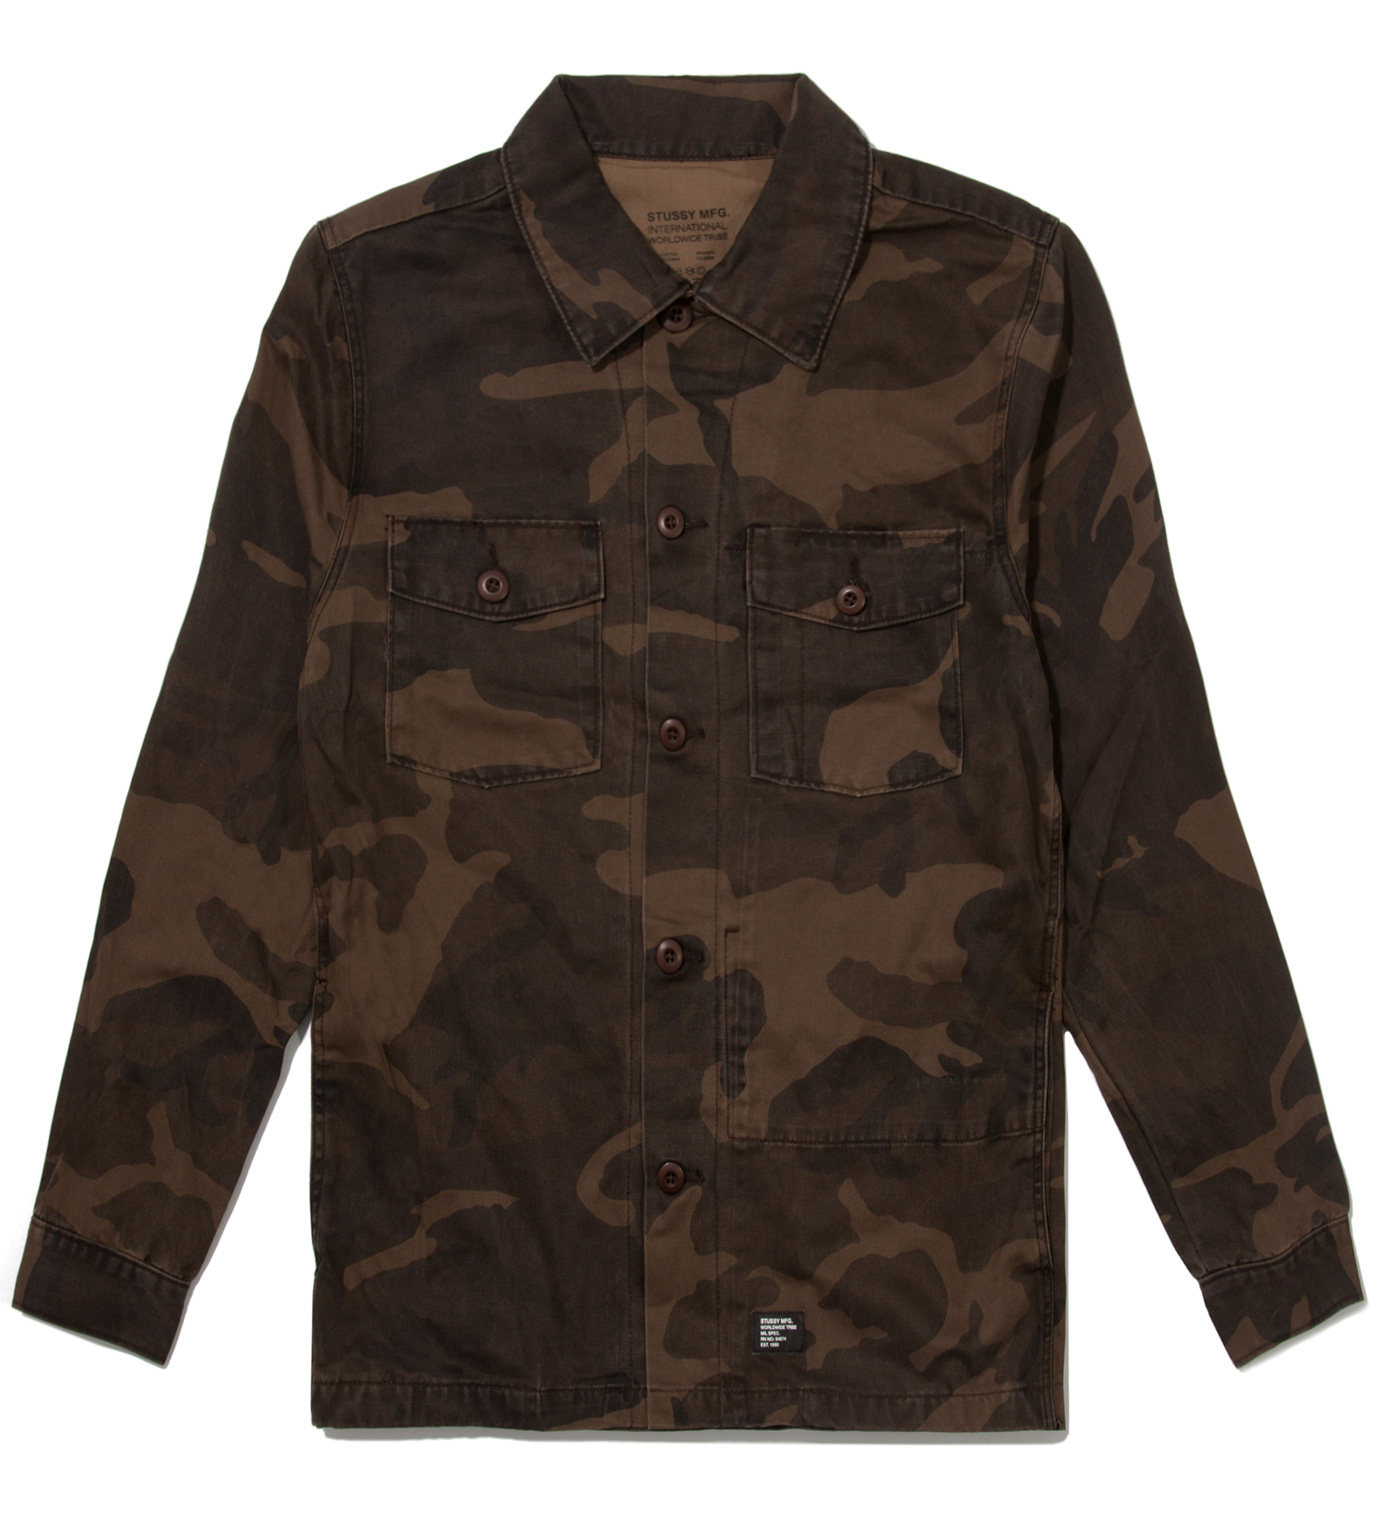 Stussy Brown Camo Troops Shirt